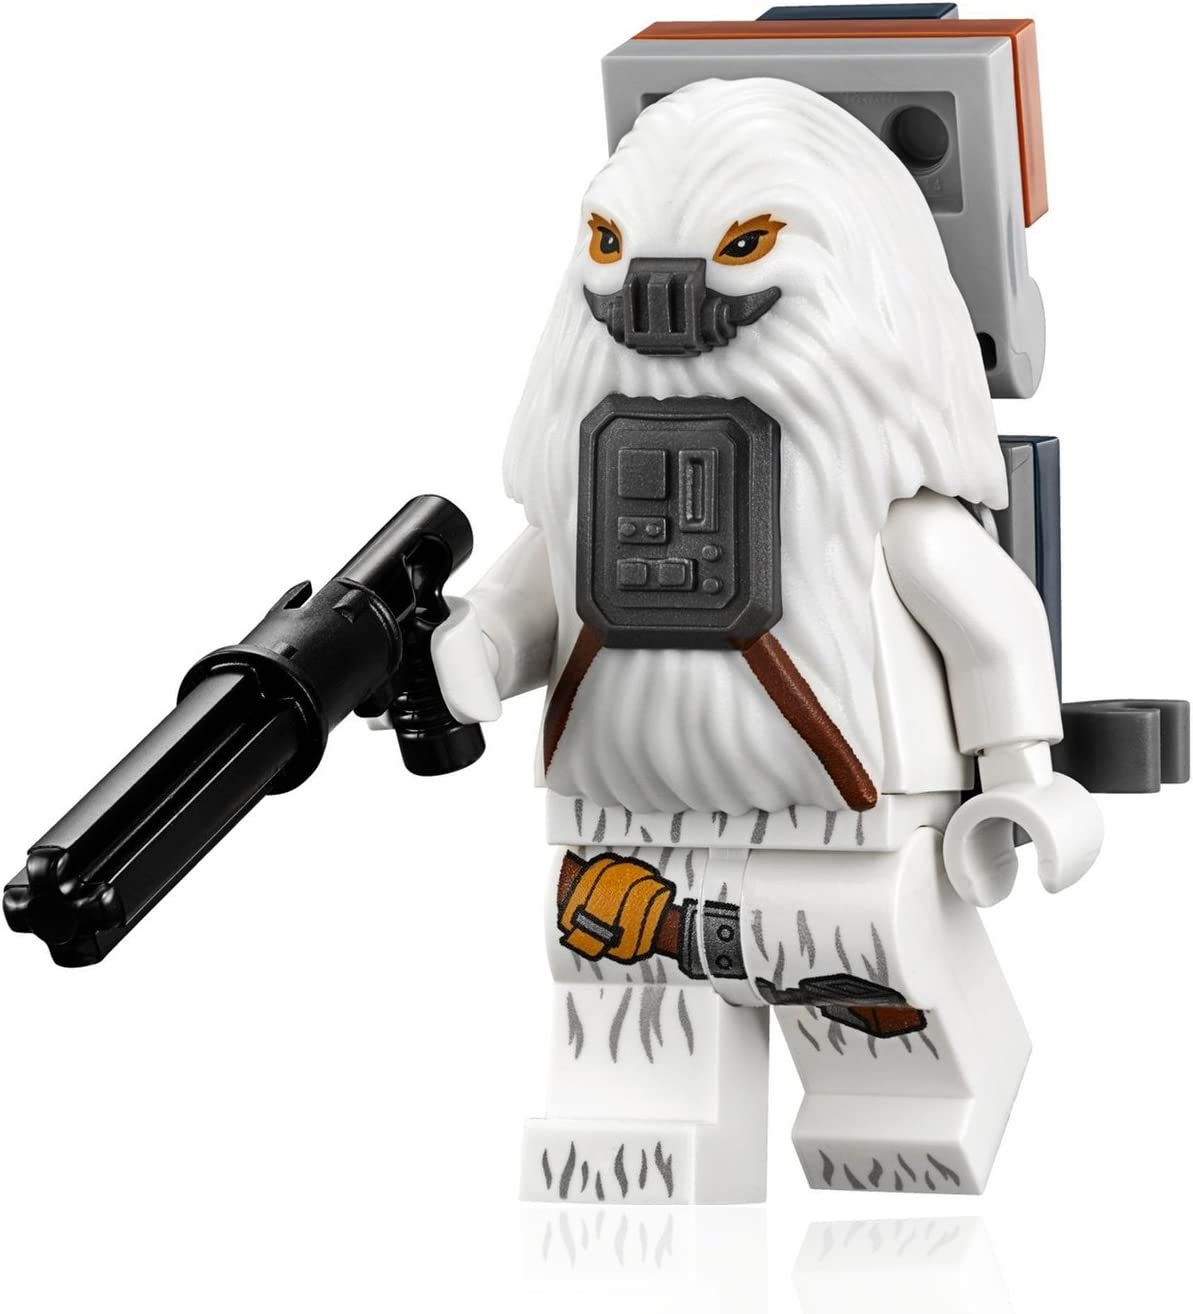 LEGO Star Wars: Rogue One Minifigure - Moroff (from Set 75172) 2017